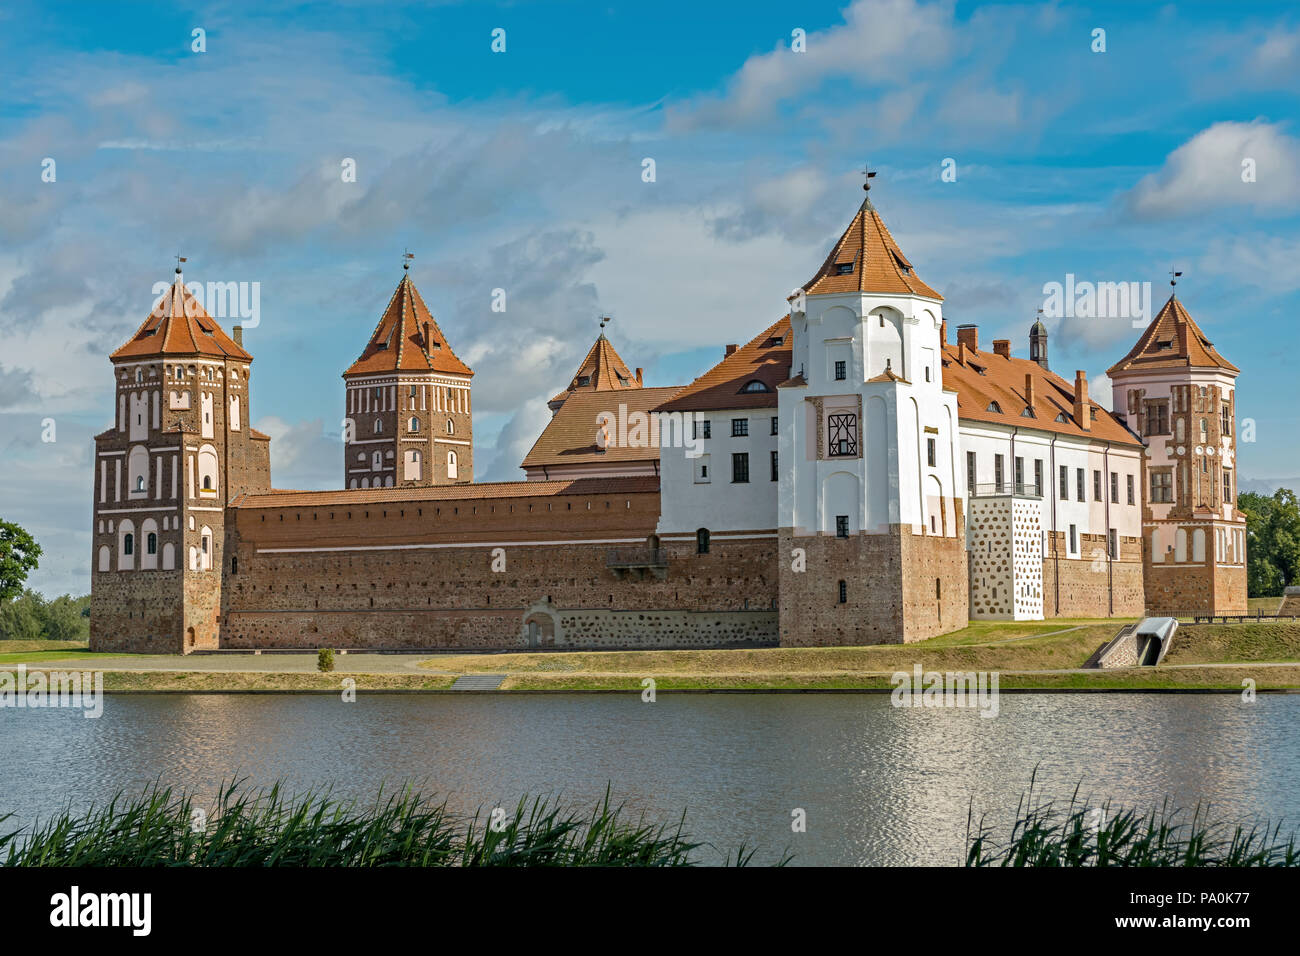 Mir castle complex in the city of Mir in Belarus against a blue sky and a pond in the foreground. - Stock Image